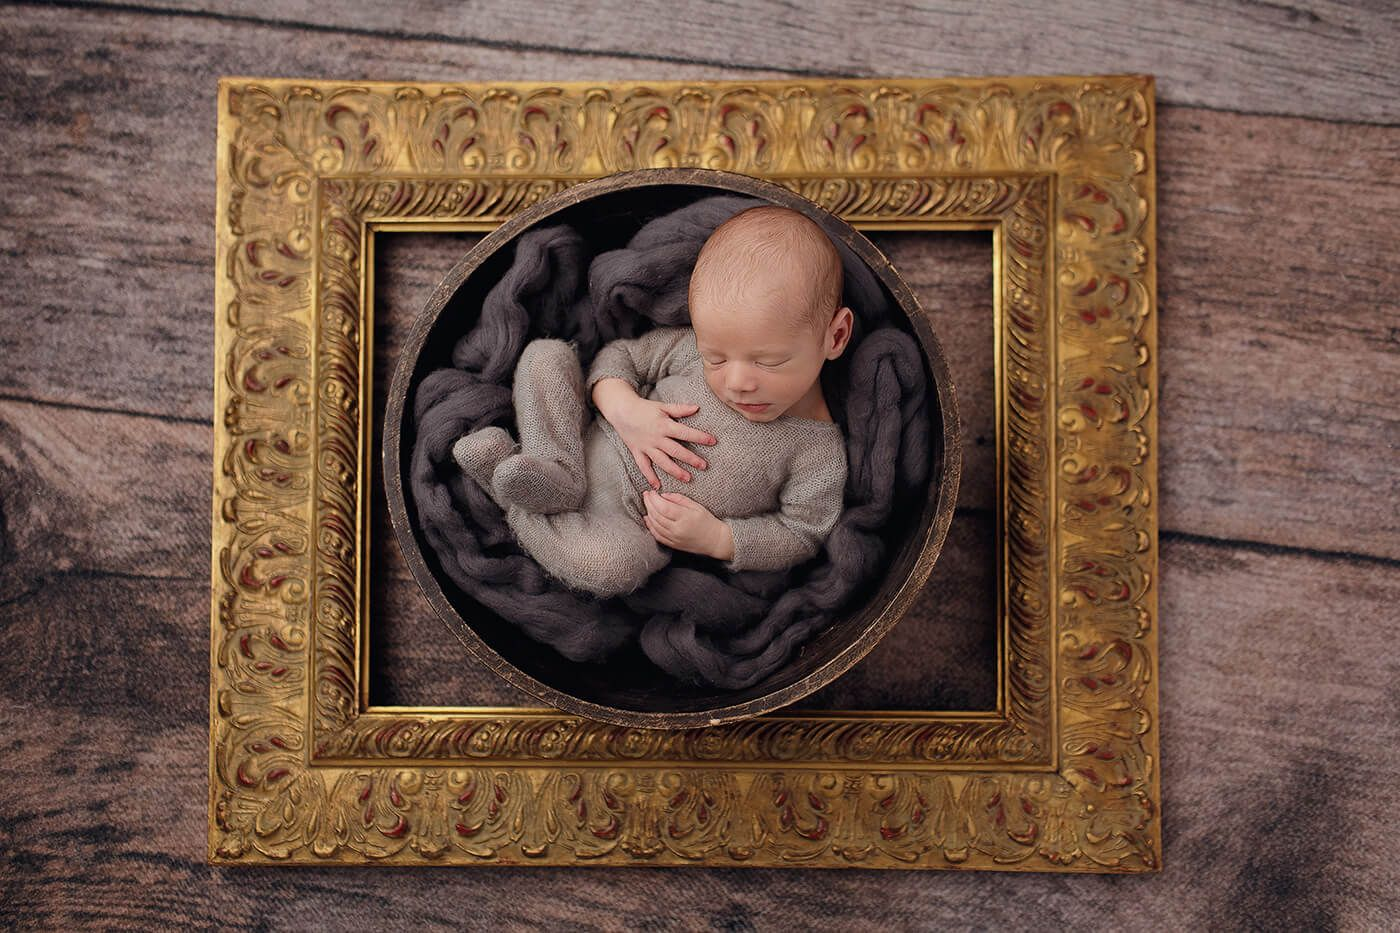 A newborn baby in a bowl surrounded by a gold frame for a newborn photo shoot in Maylands, WA